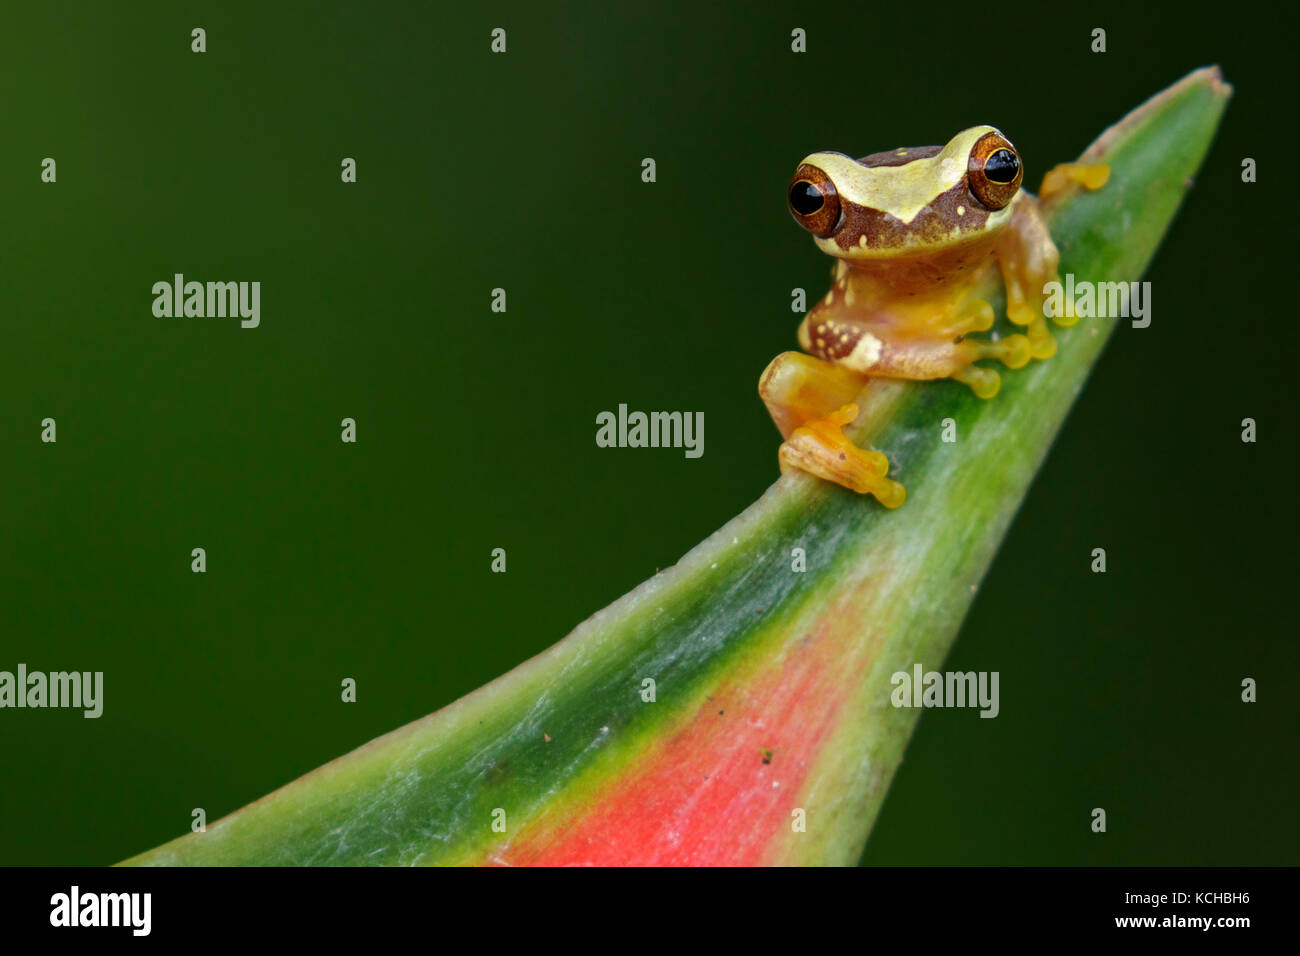 Hourglass Frog perched on a branch in Costa Rica. - Stock Image